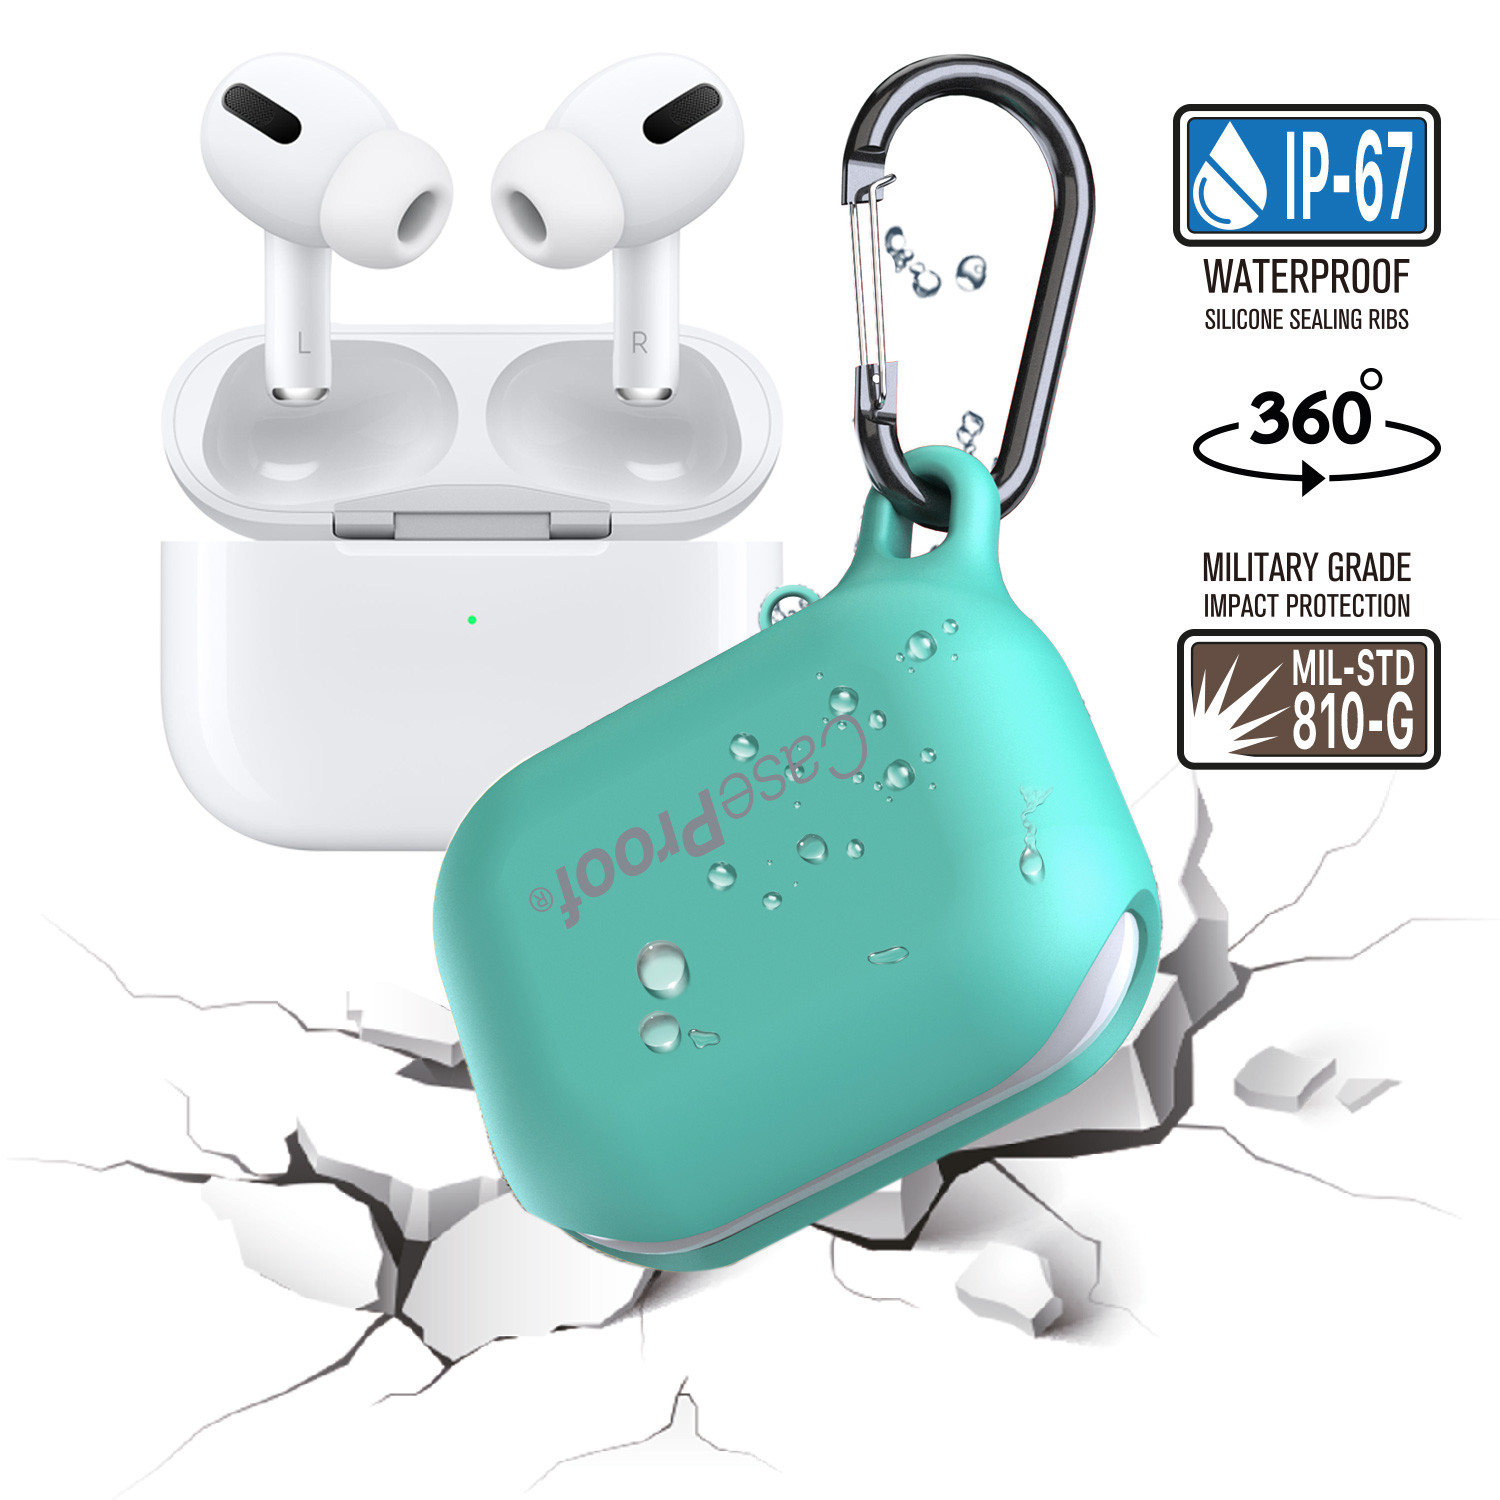 Airpods Waterproof Case For Airpods Celadon Blue